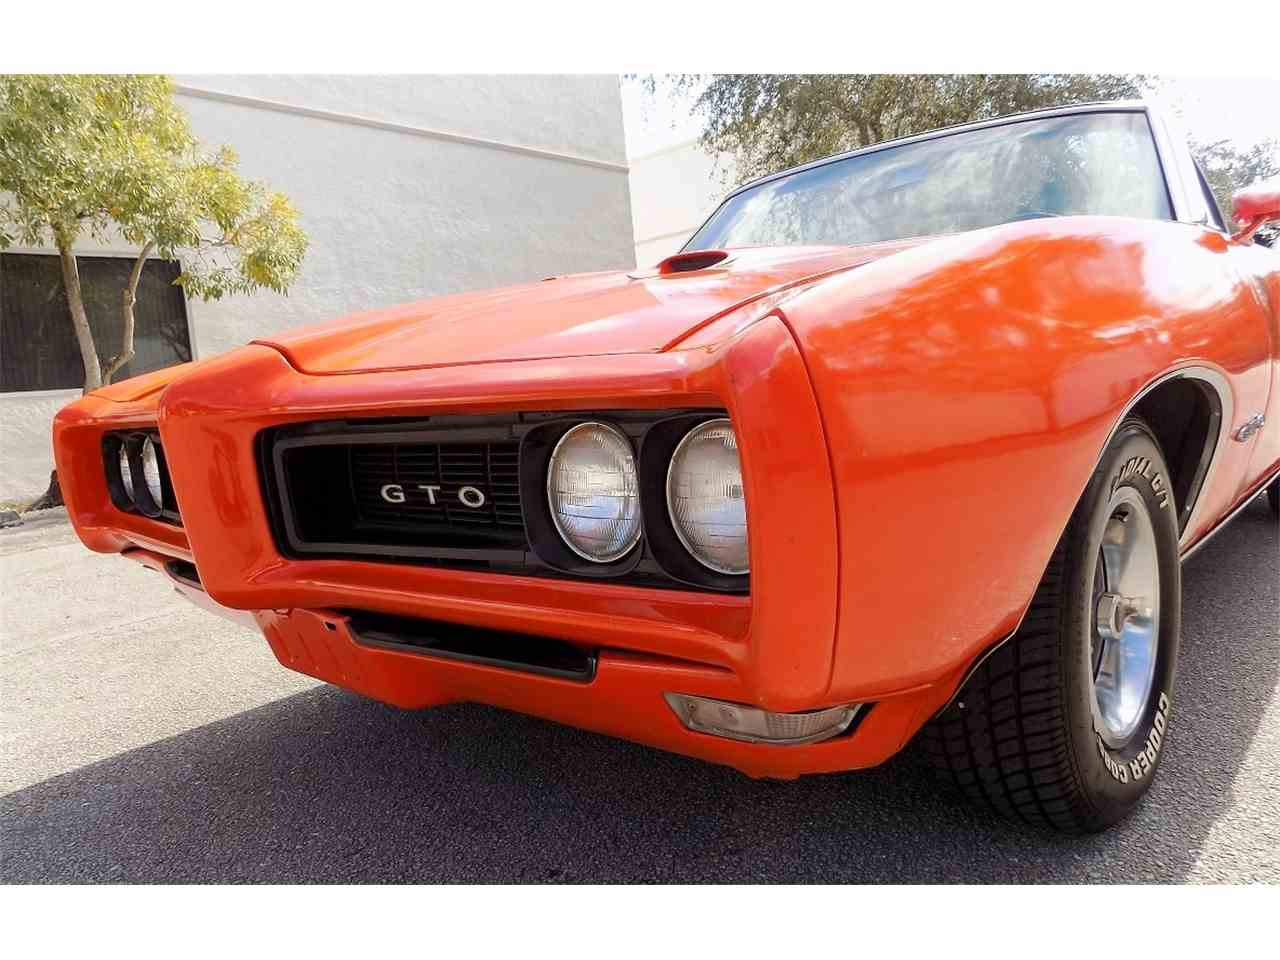 Large Picture of 1968 GTO located in POMPANO BEACH Florida - $26,995.00 Offered by Cool Cars - JRS0